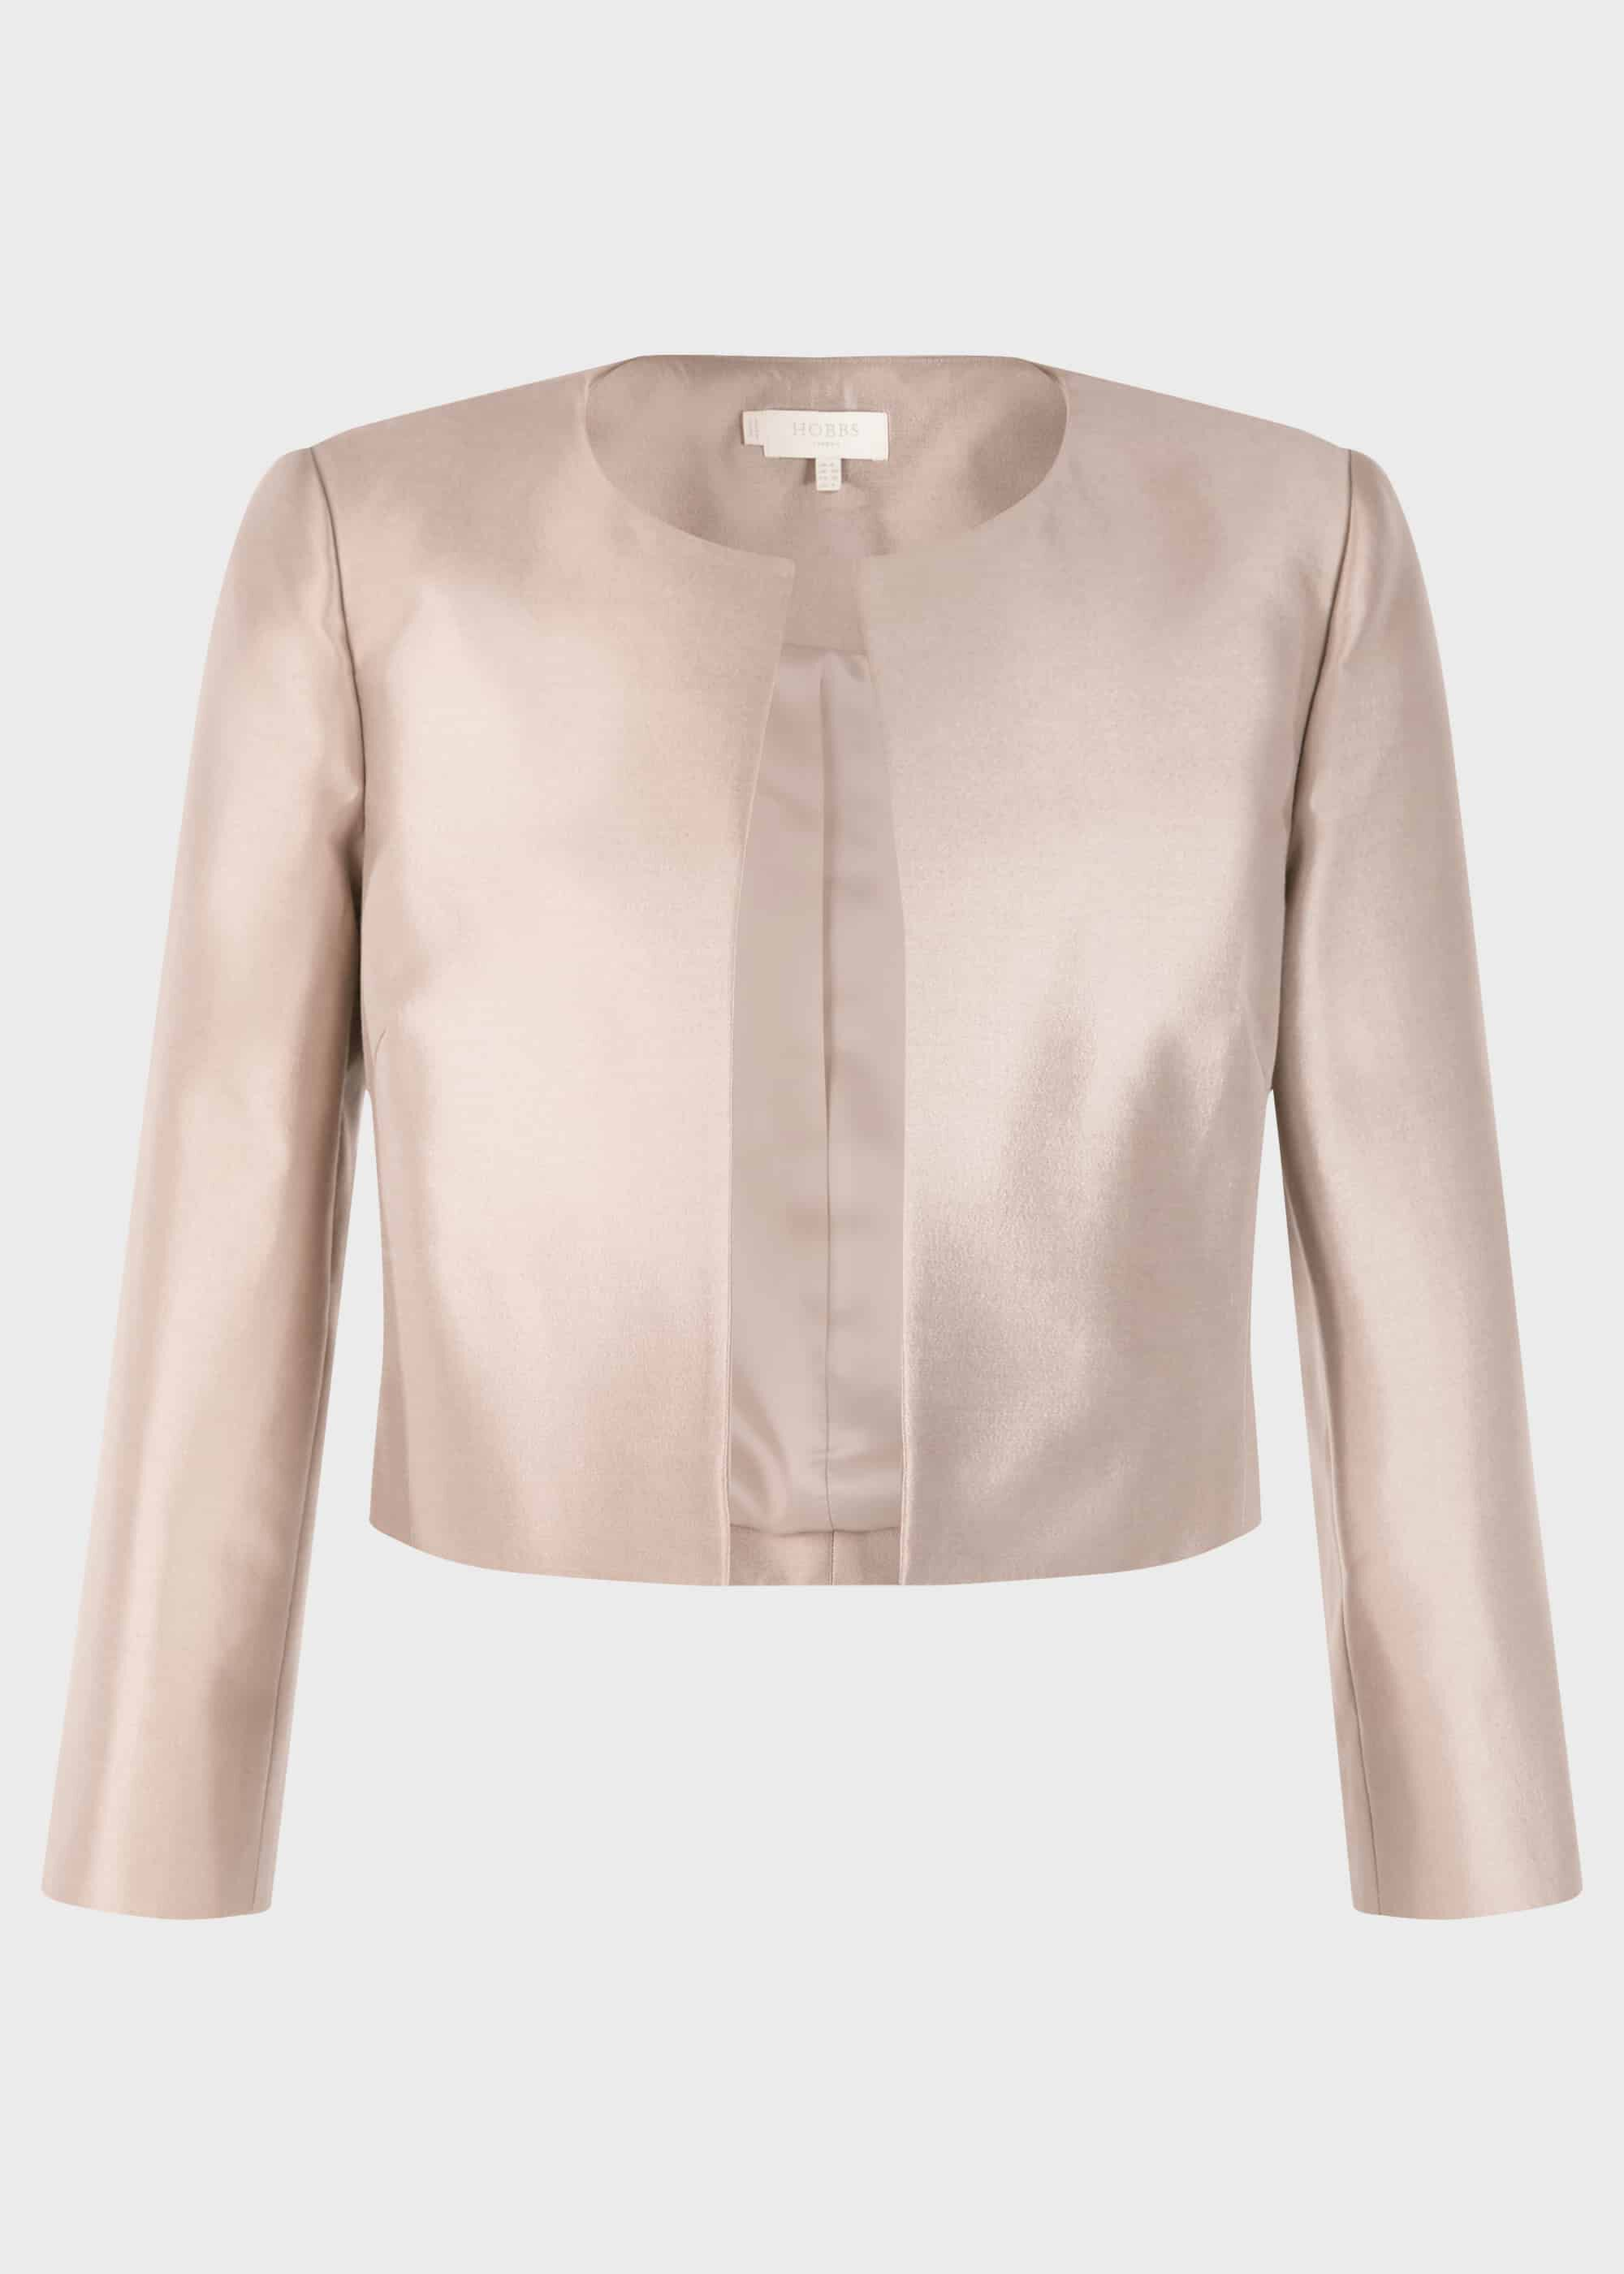 RRP £199. Hobbs Fran Oyster Jacket Various Sizes